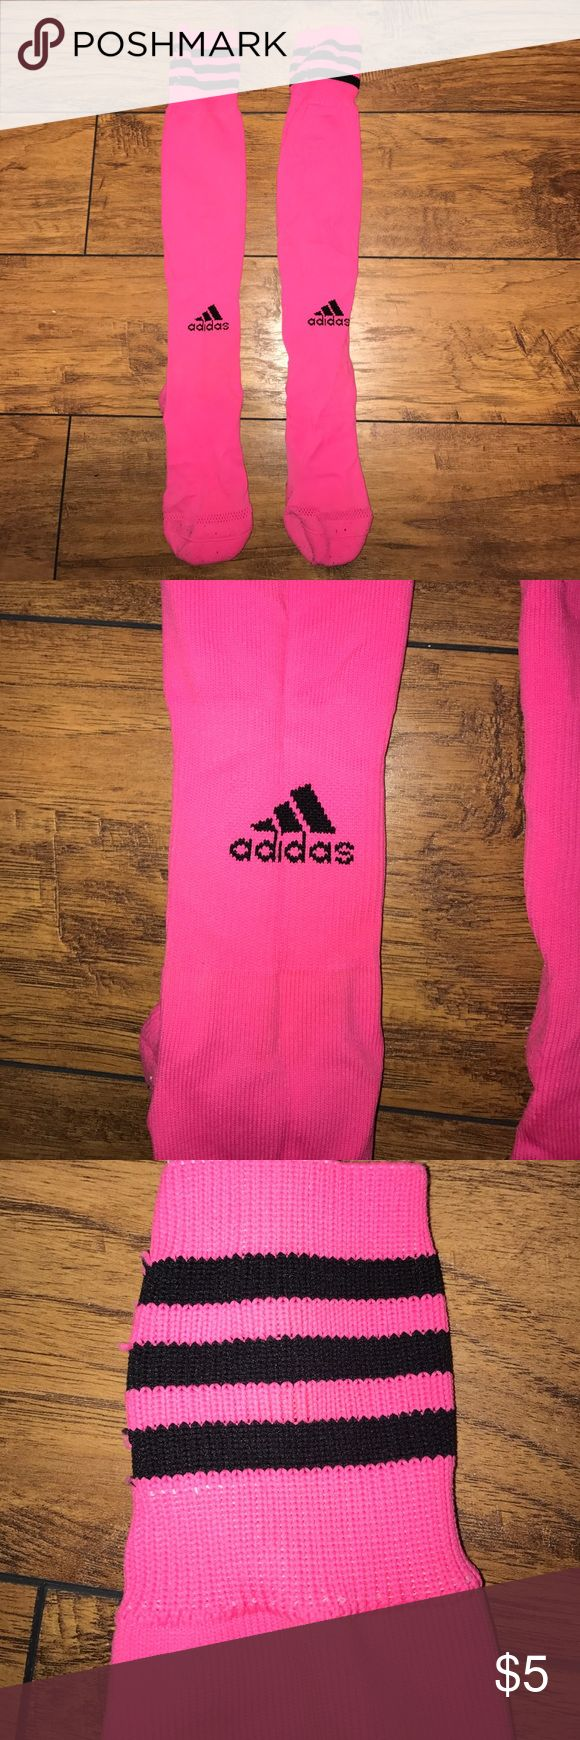 Pink Adidas Athletic Socks Worn once, comfy athletic material Adidas Accessories